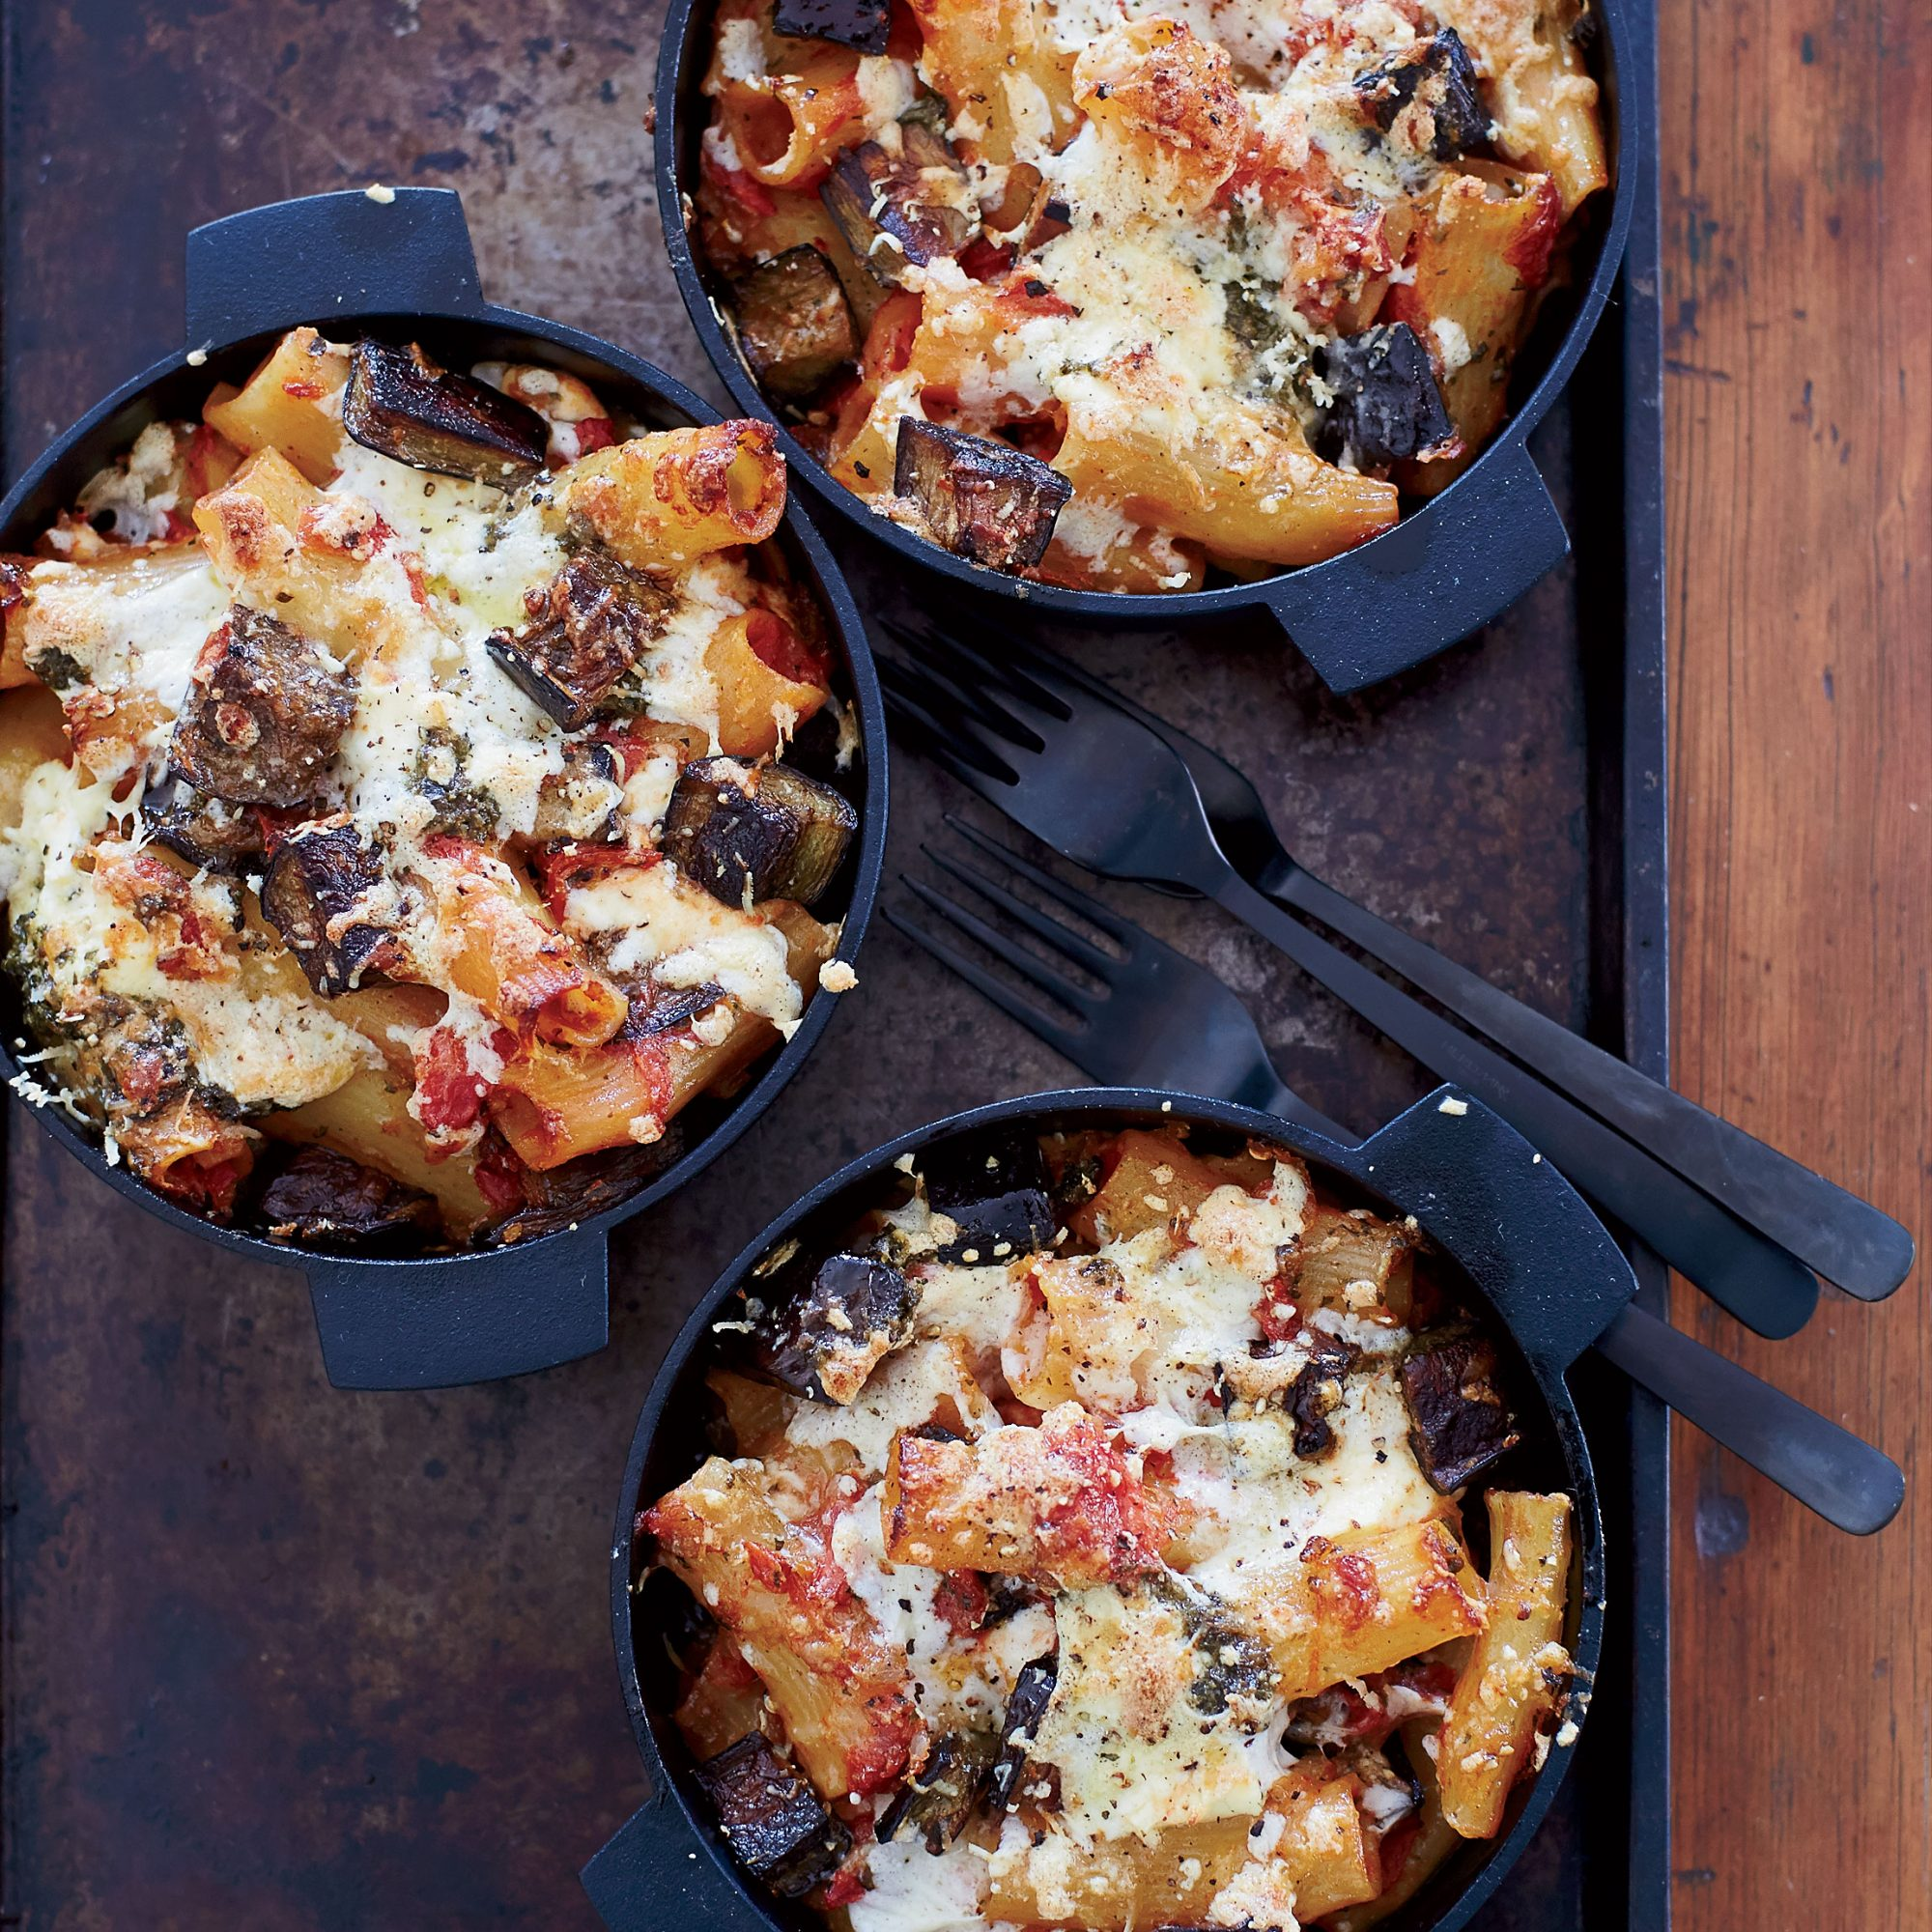 Baked Rigatoni with Eggplant, Tomatoes and Ricotta